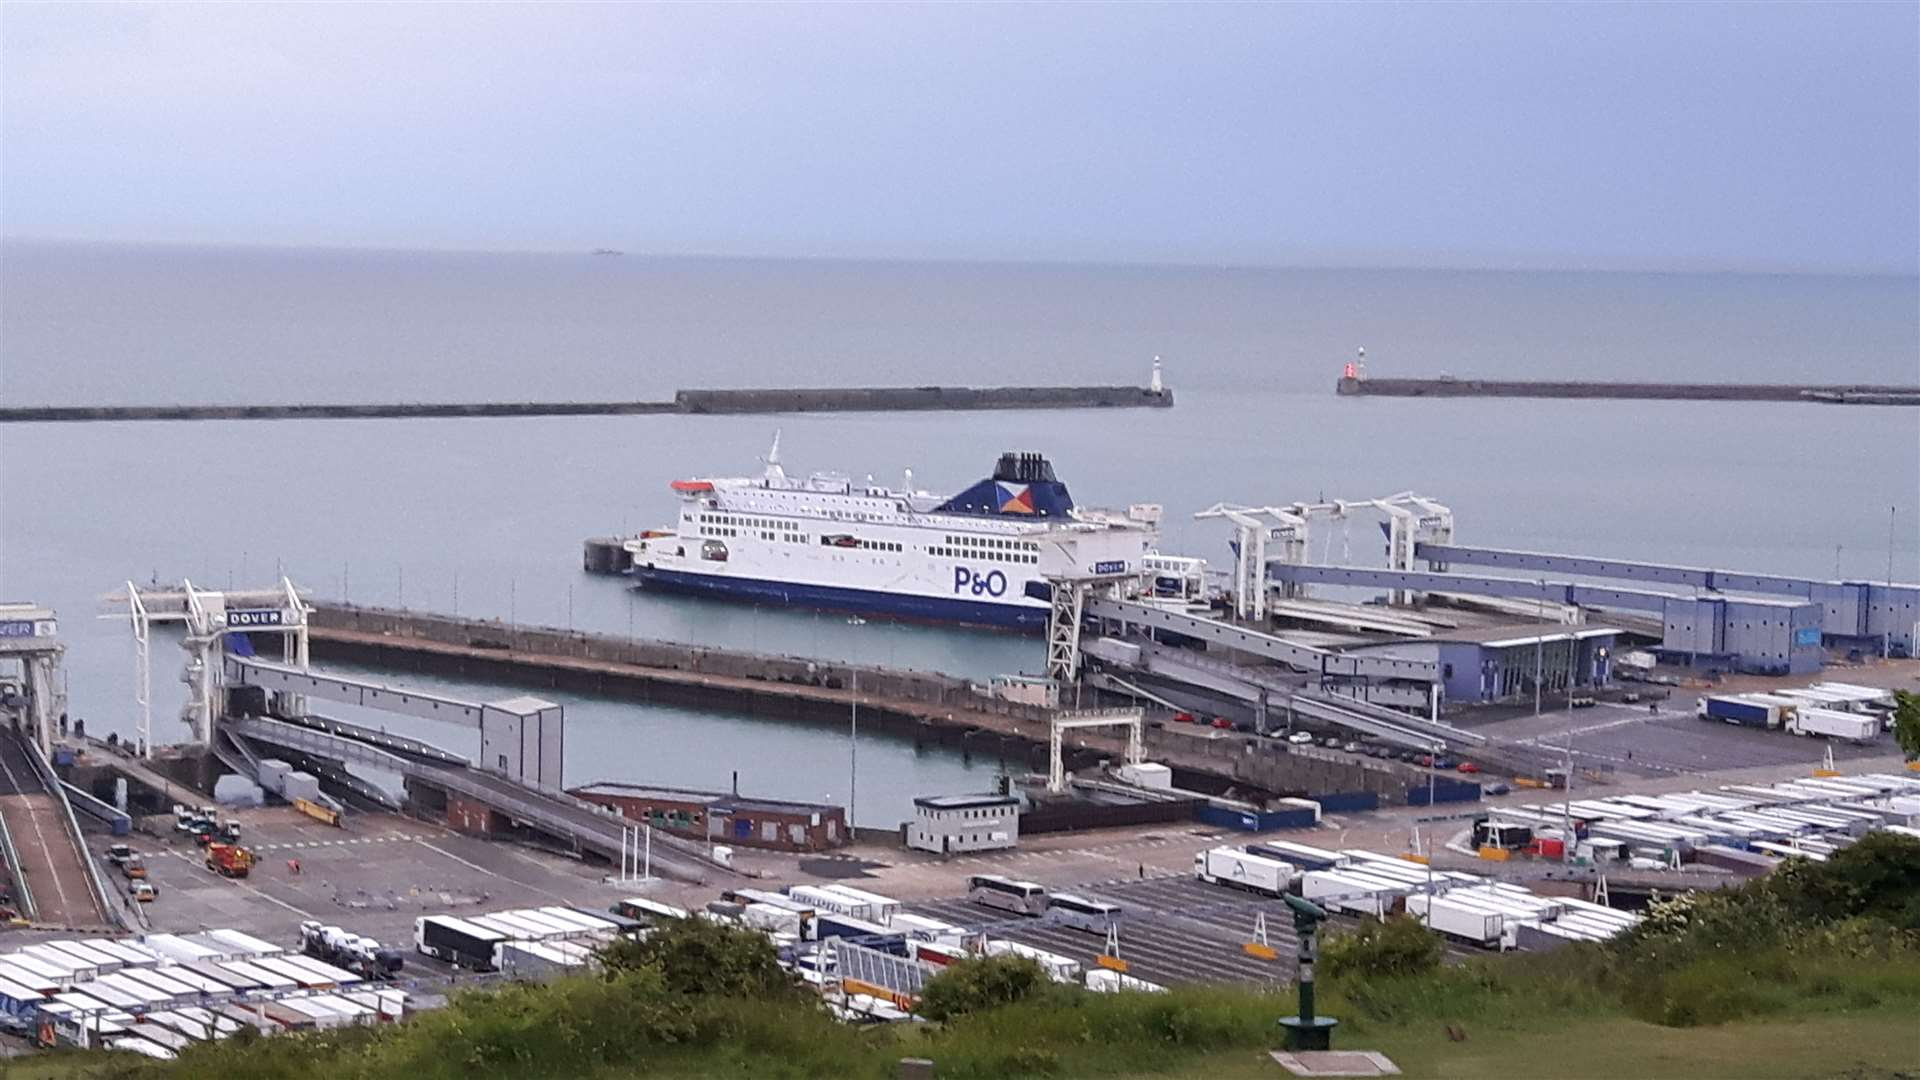 The Port of Dover has been a key trading link with Europe